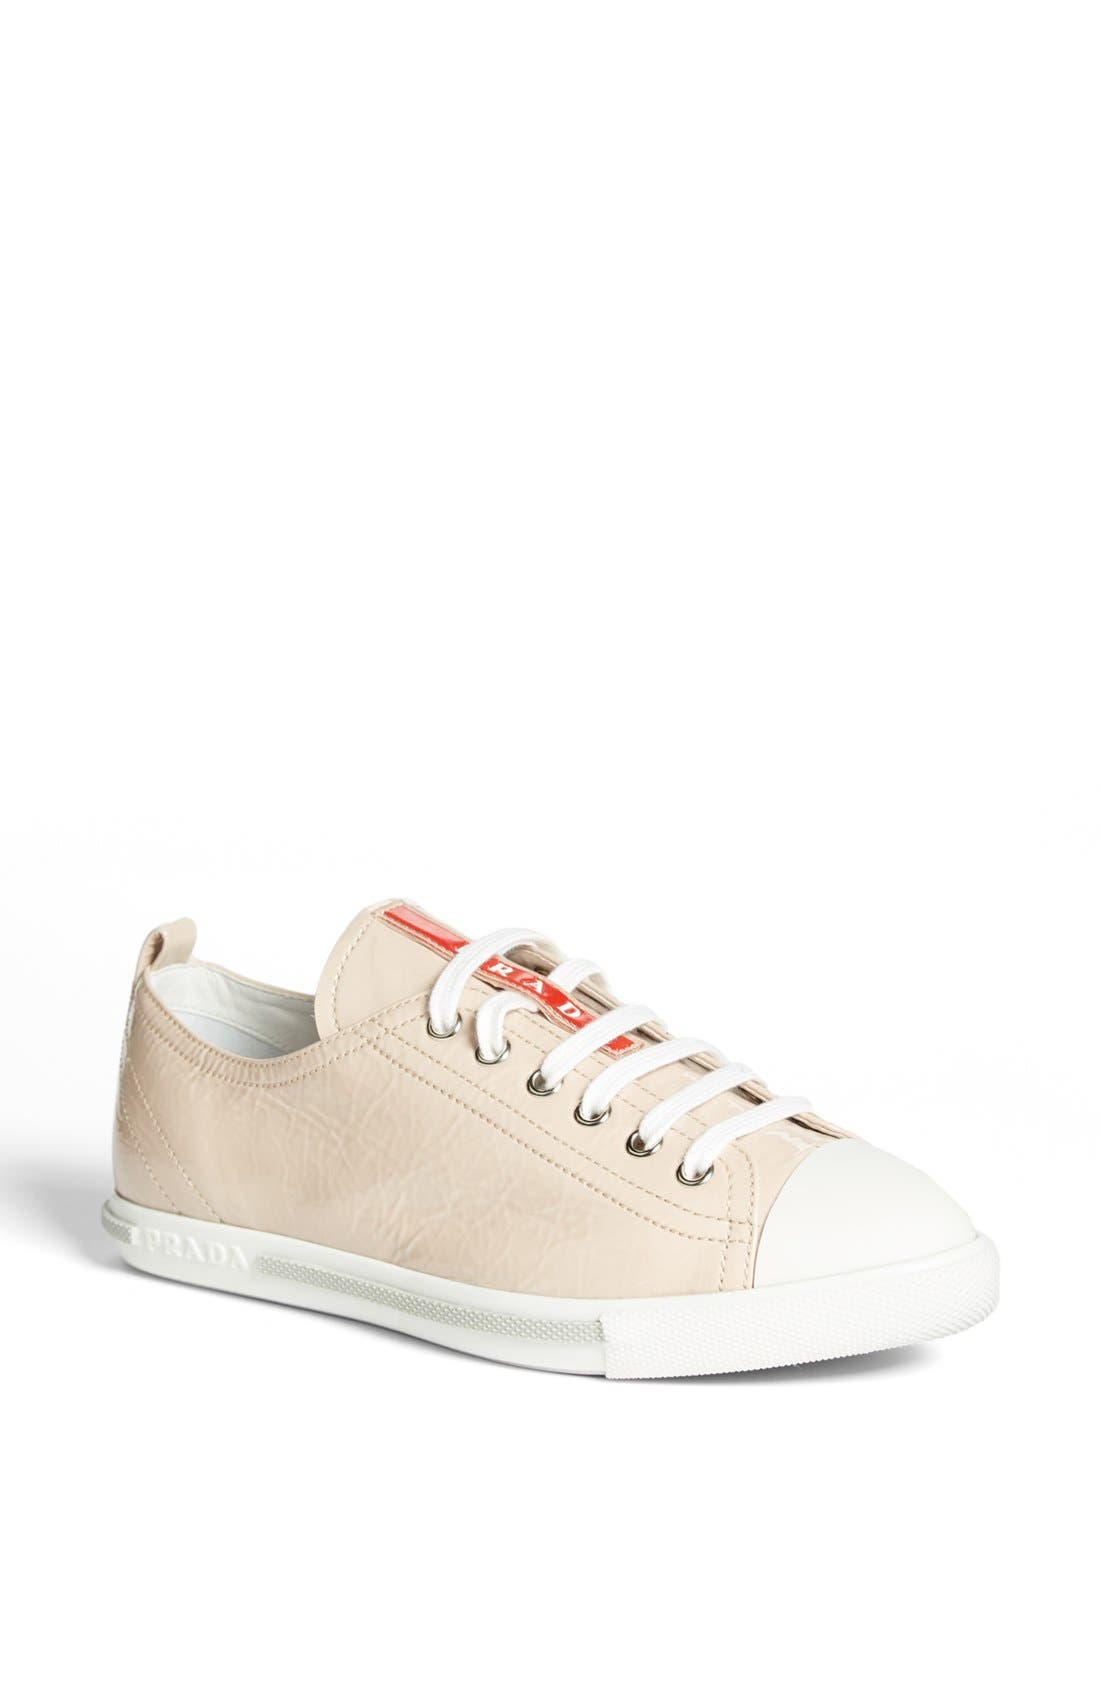 Alternate Image 1 Selected - Prada Low Top Cap Toe Sneaker